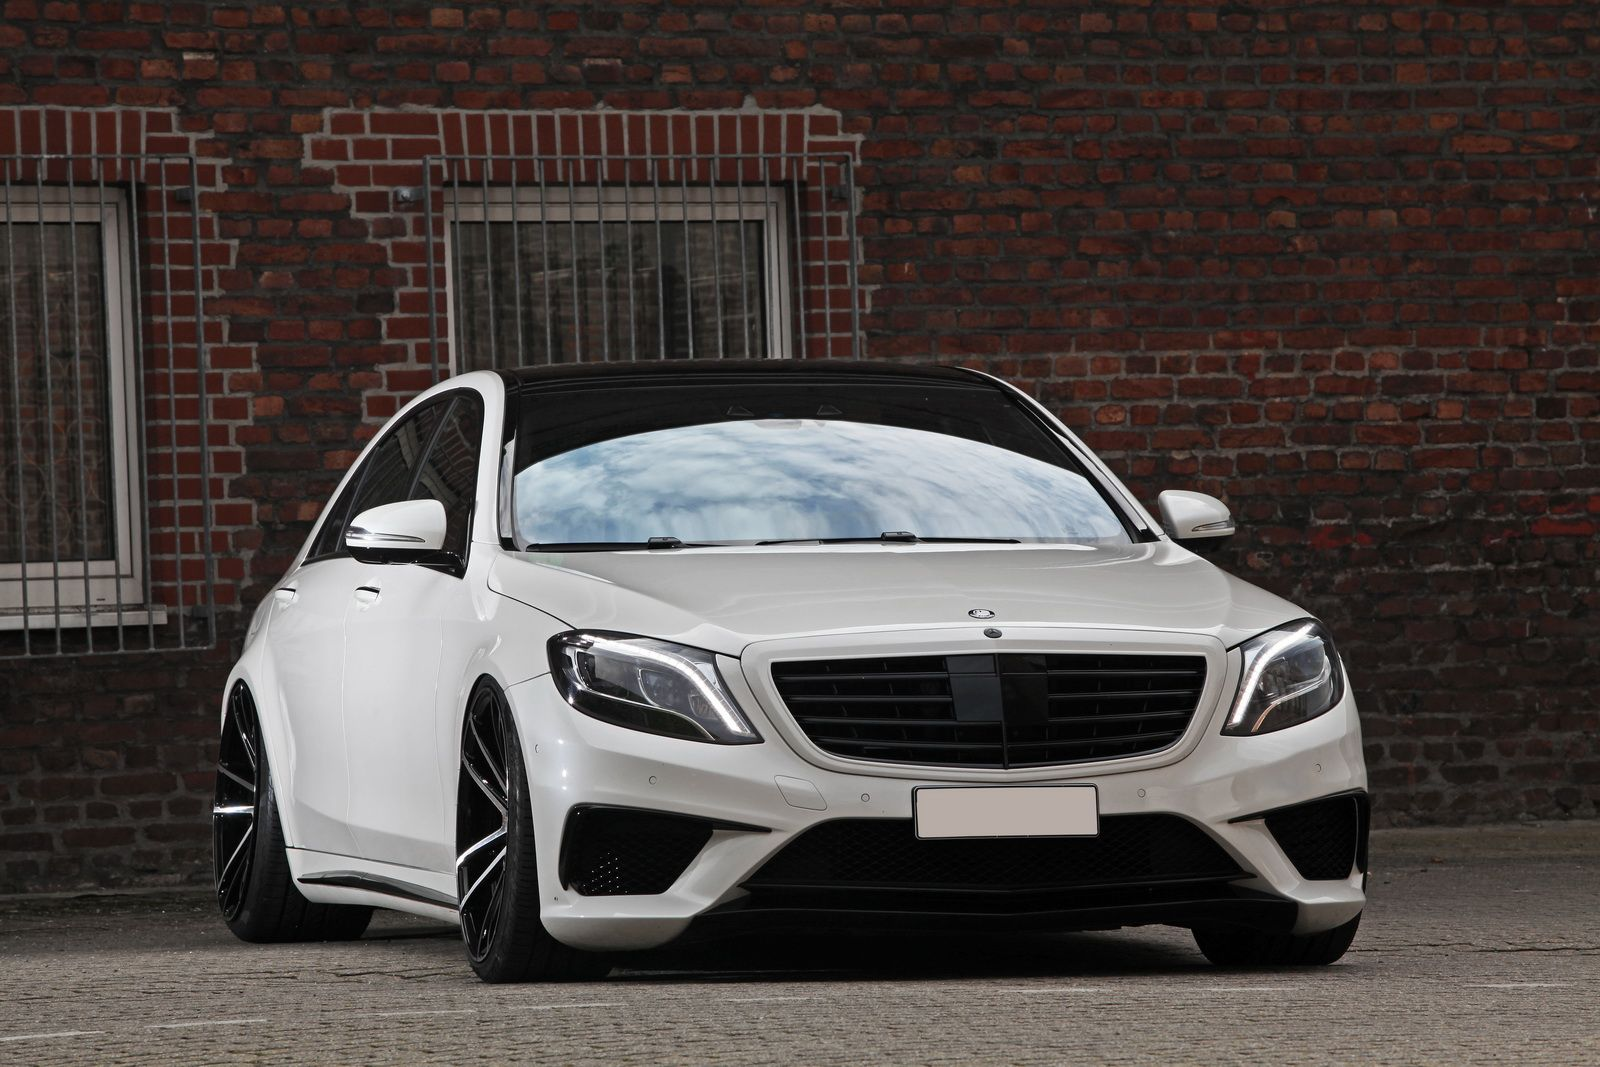 Mercedes Amg S63 Slammed Stanced And Boosted Carscoops Mercedes Amg Amg Mercedes